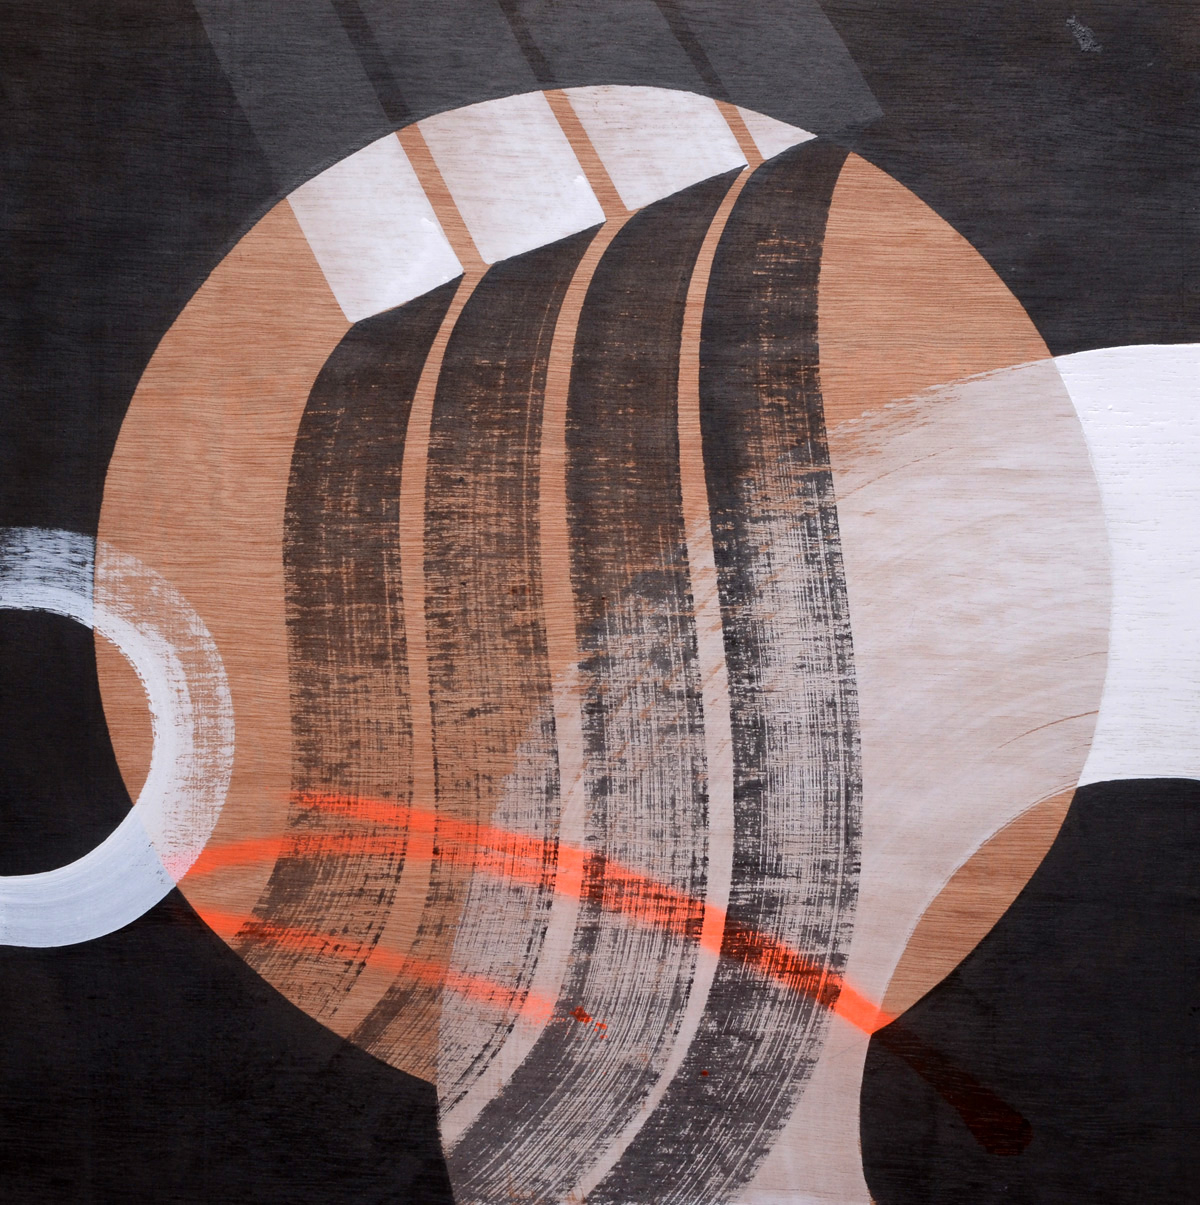 Lucy Mclauchlan, Marking Shadows